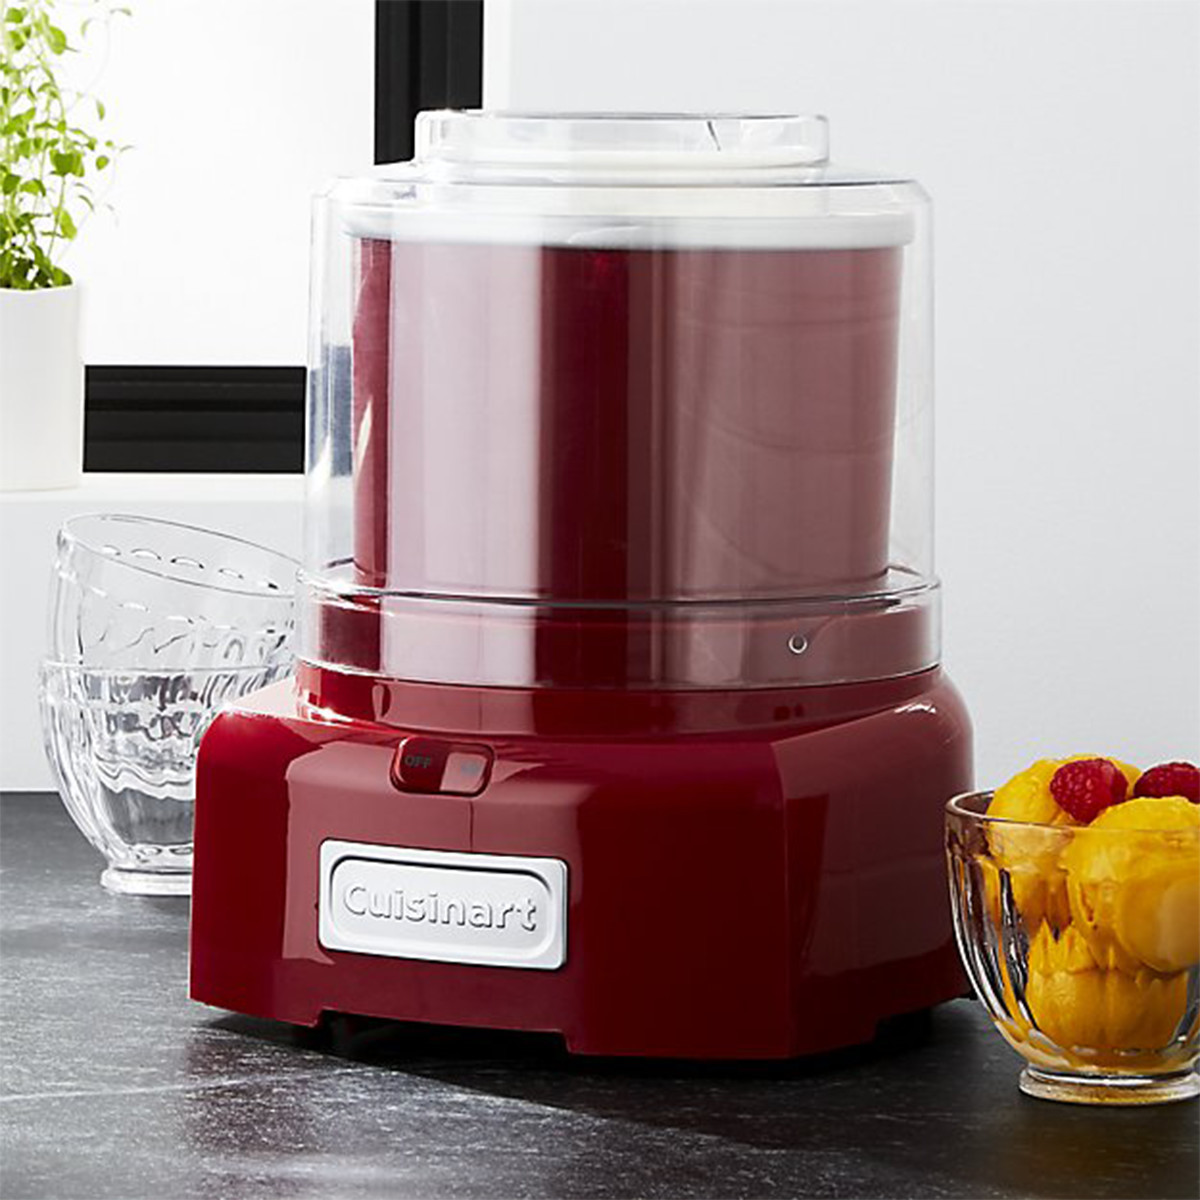 Red and white ice cream maker by Cuisinart photo